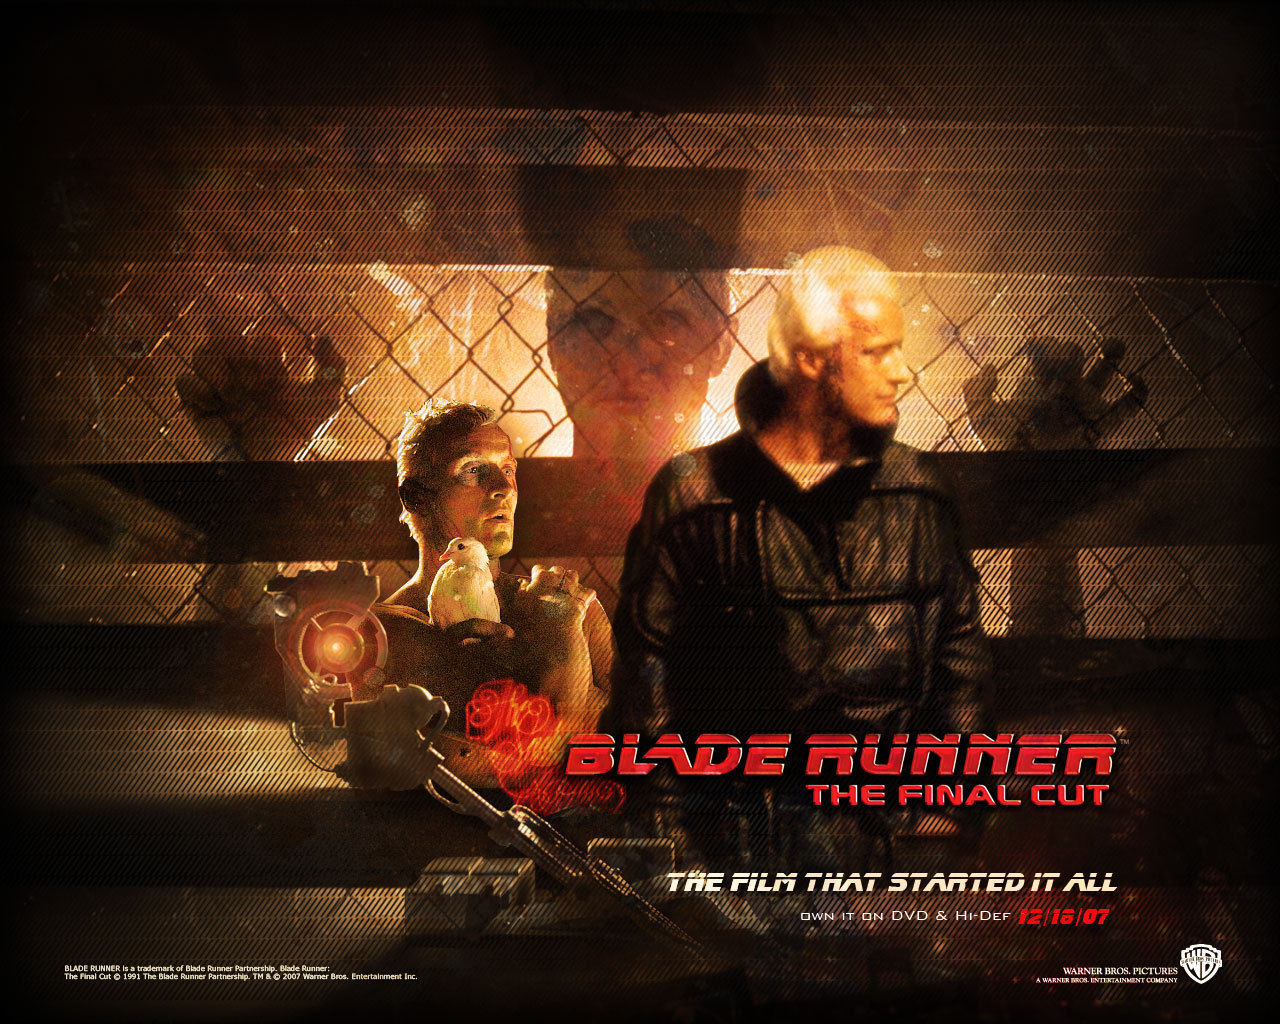 Official Blade Runner Wallpaper   Blade Runner Wallpaper 8207464 1280x1024